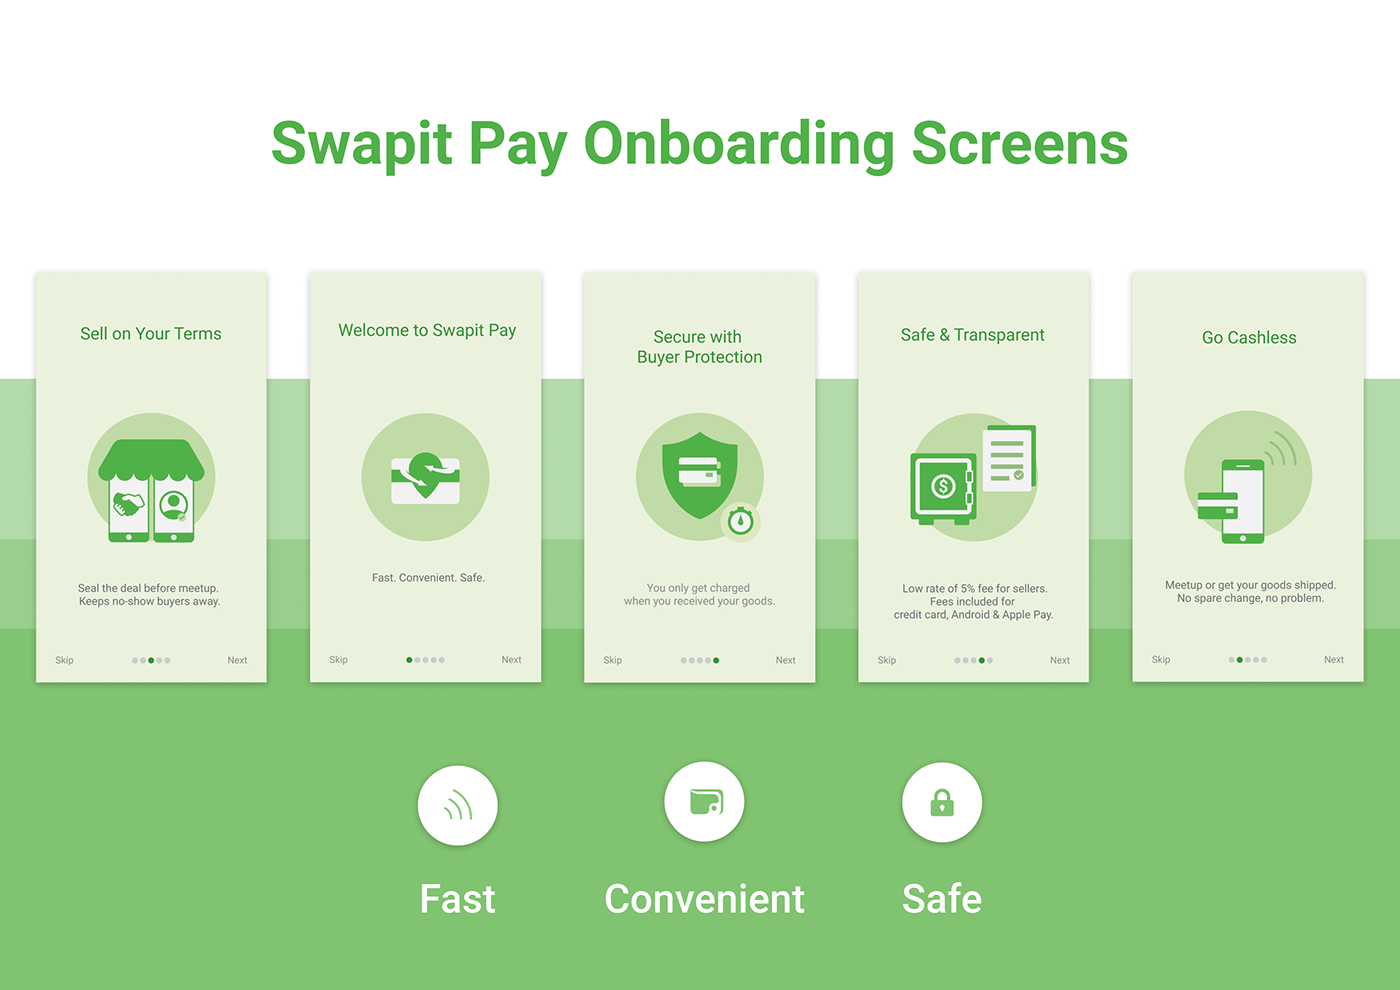 Onboarding onboarding screens Swapit Pay Swapit